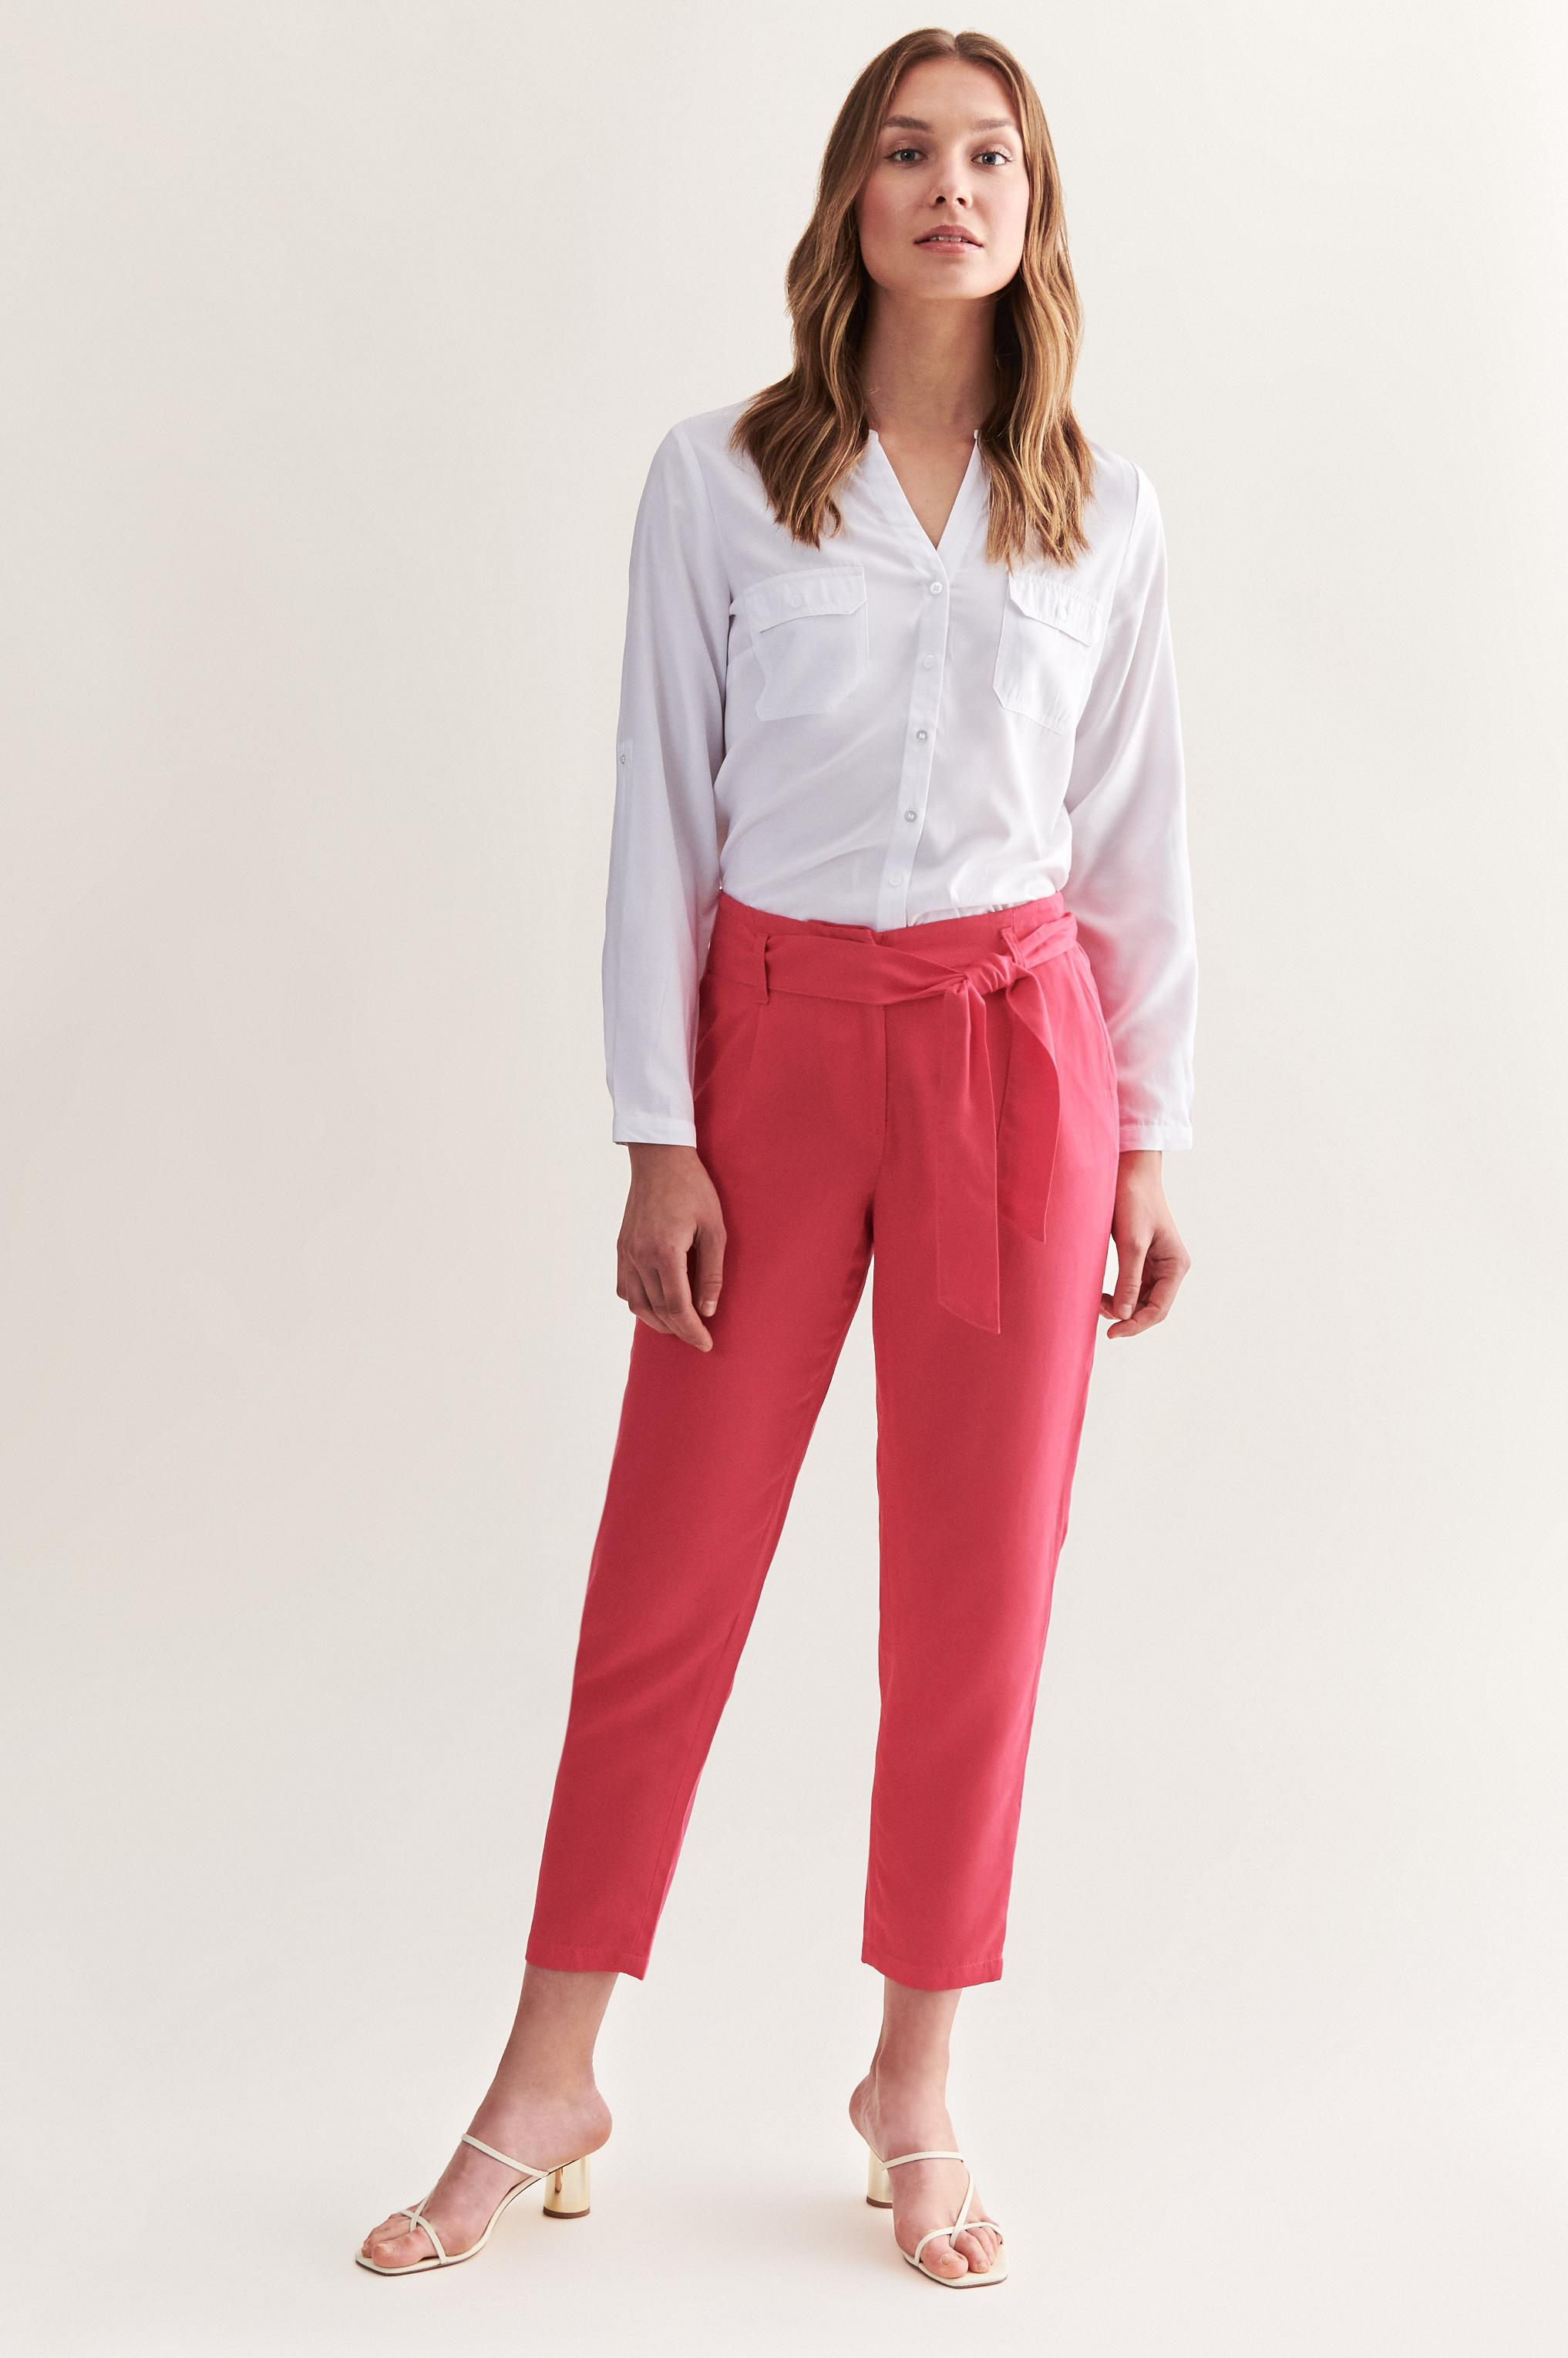 LADIES' NATURAL FABRIC PANTS LUCIA